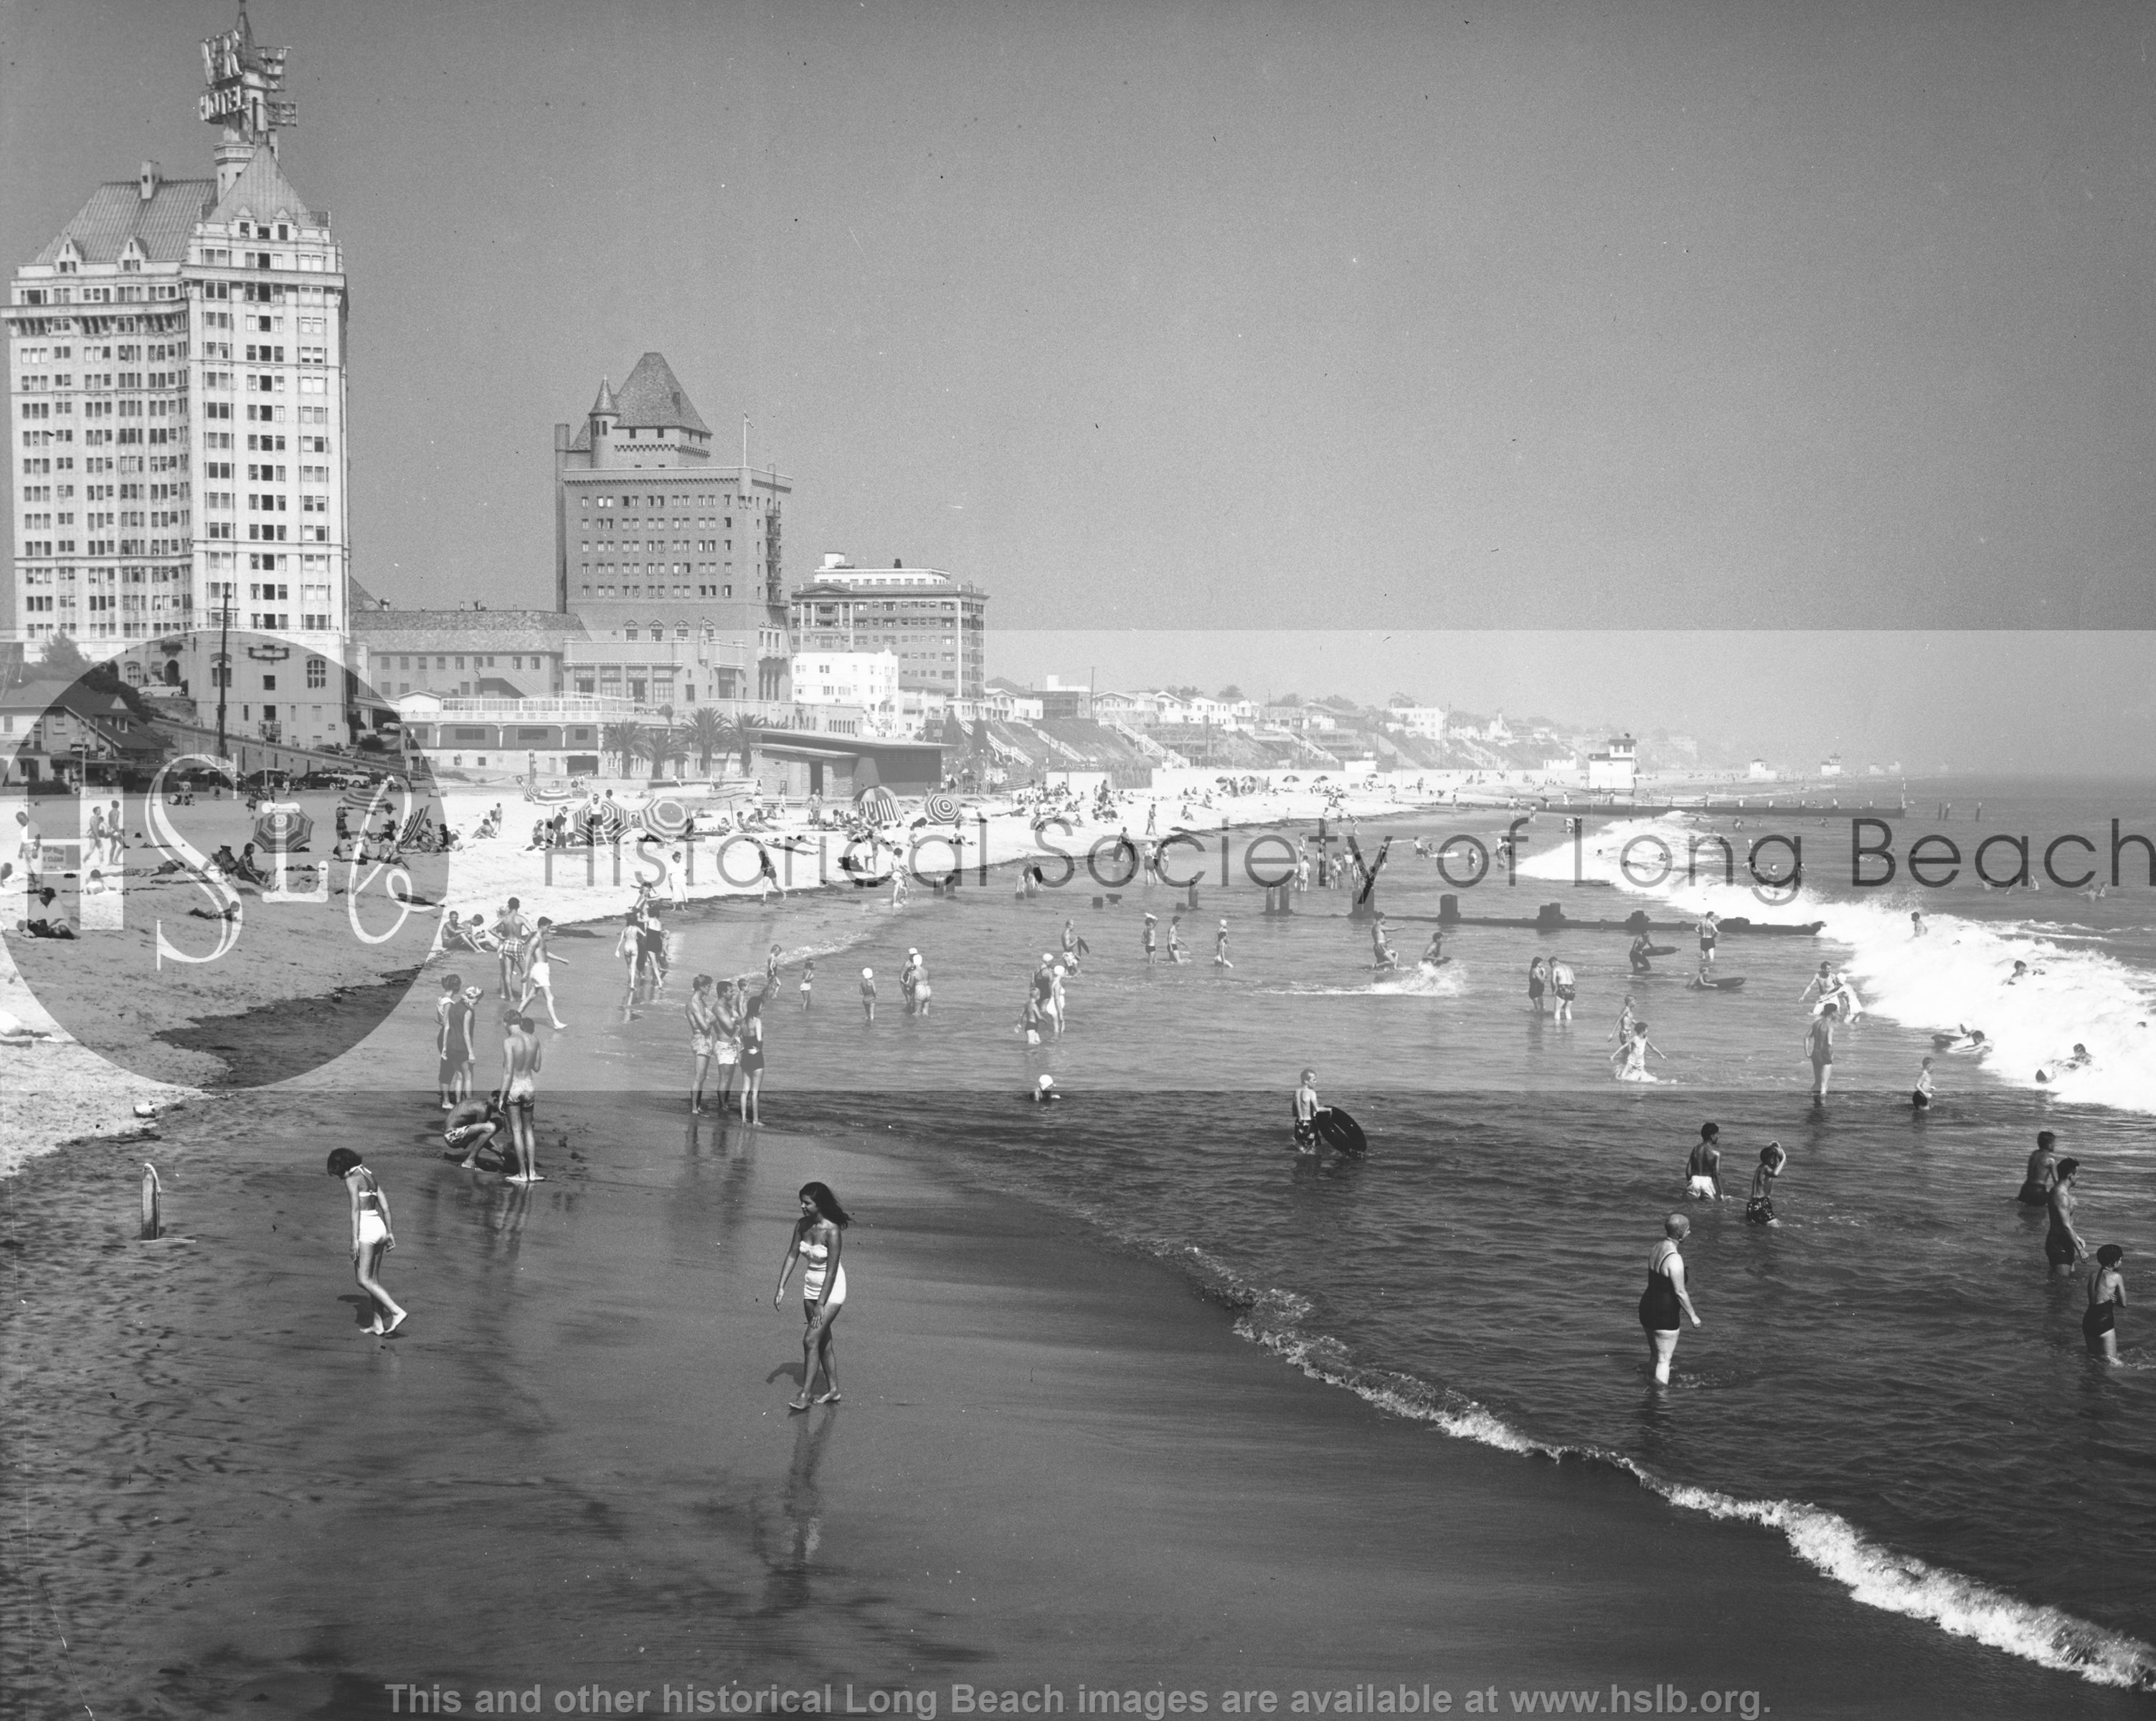 East beach, 1953 vintage photograph